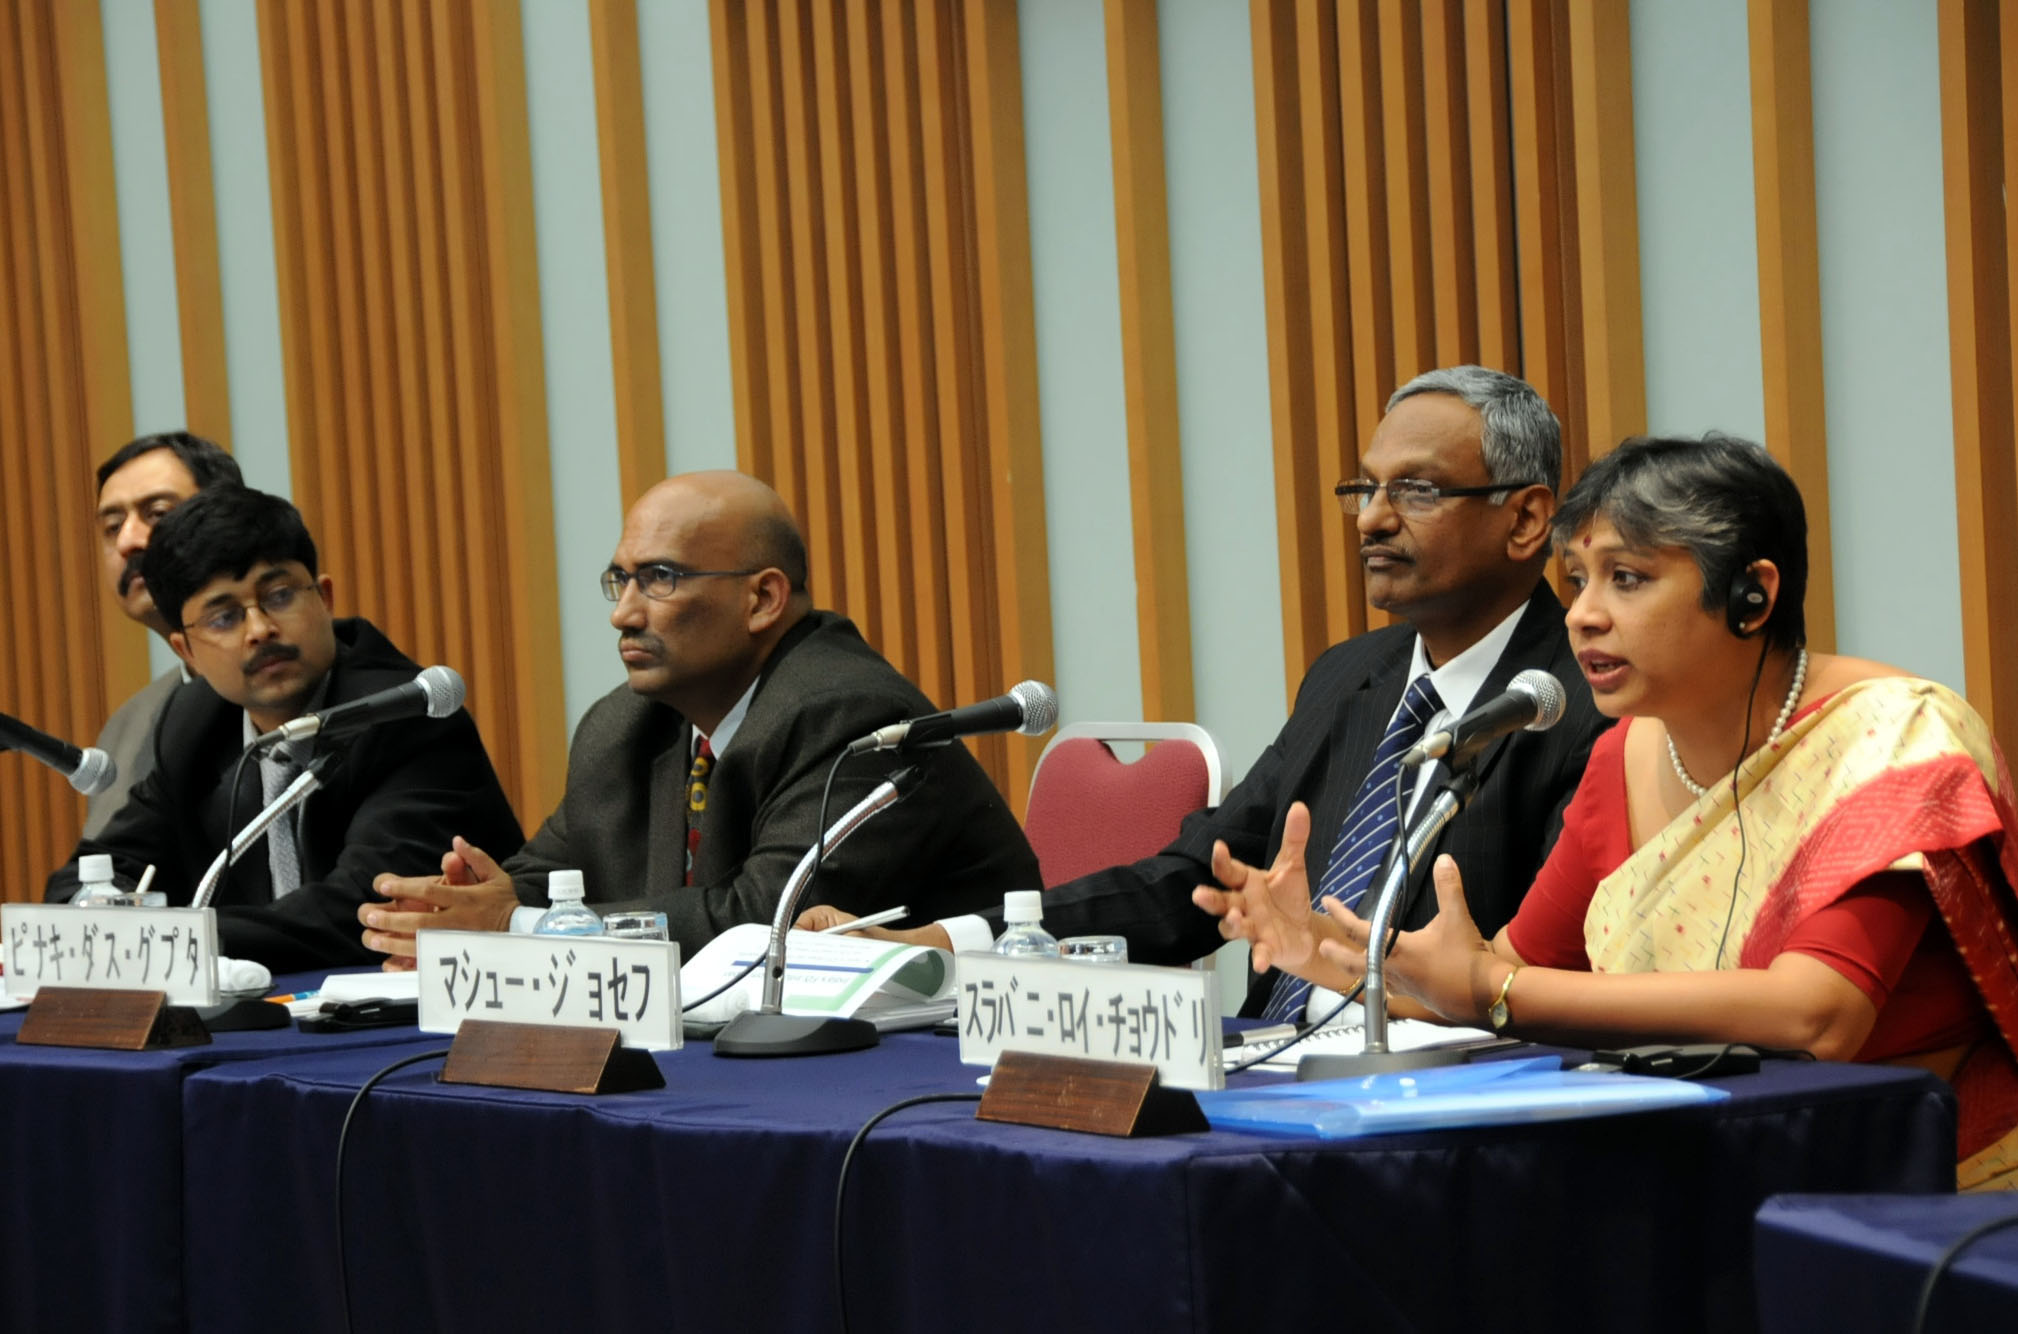 Srabani Roy Choudhury (right), an associate professor at Jawaharlal Nehru University, discusses the changing consumer trends in India during a symposium held Jan. 19 at Keidanren Kaikan in Tokyo, while other panelists Mathew Joseph (center) and Pinaki Dasgupta listen. | SATOKO KAWASAKI